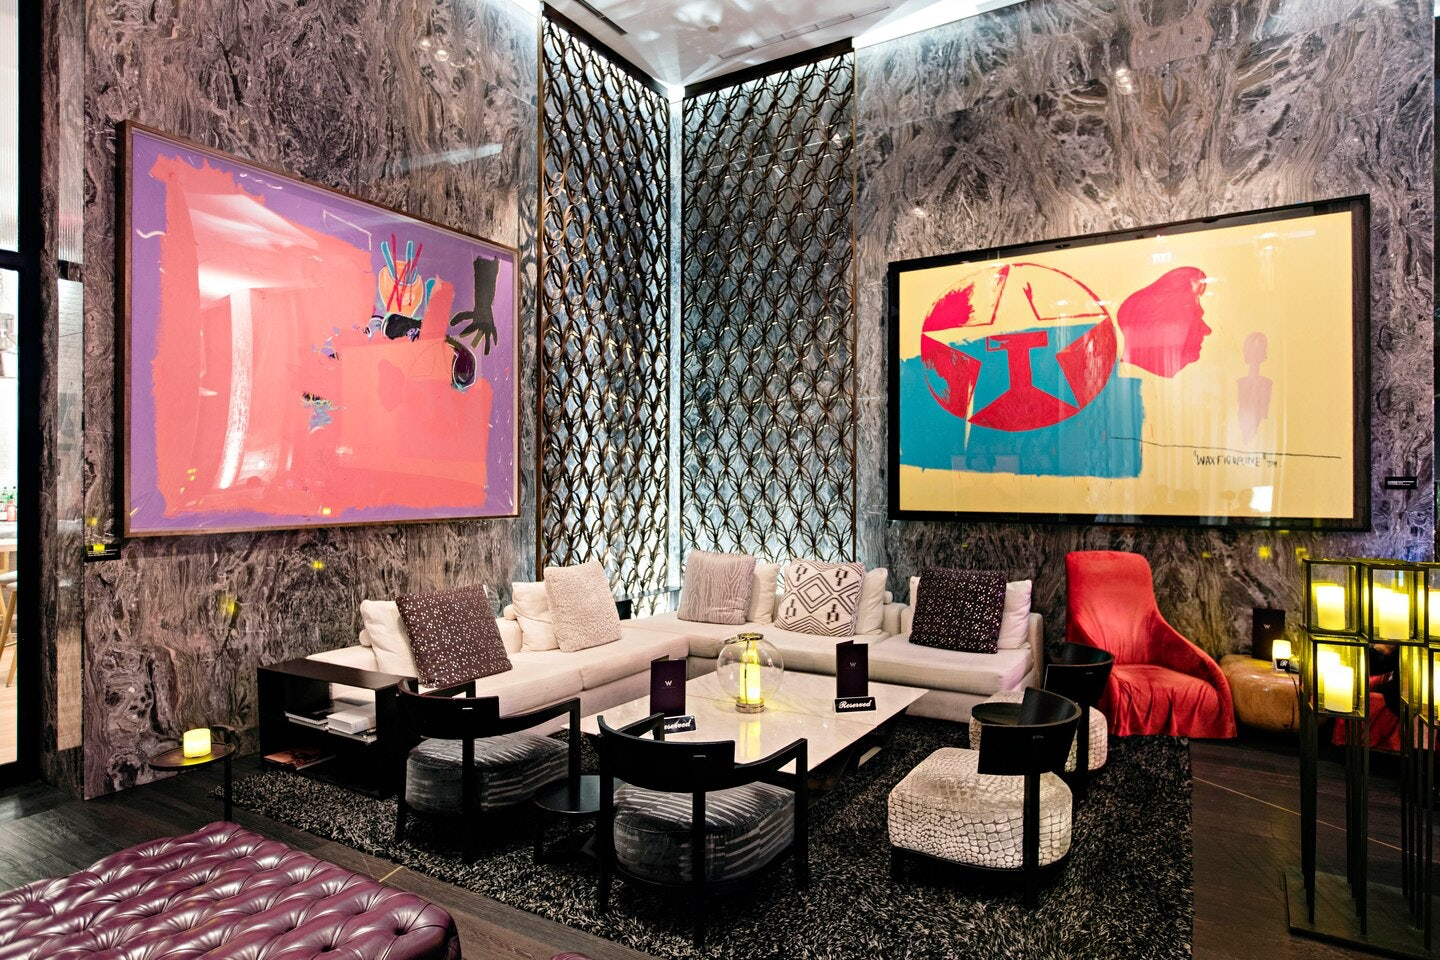 interior of bar Living Room at the W Hotel Miami